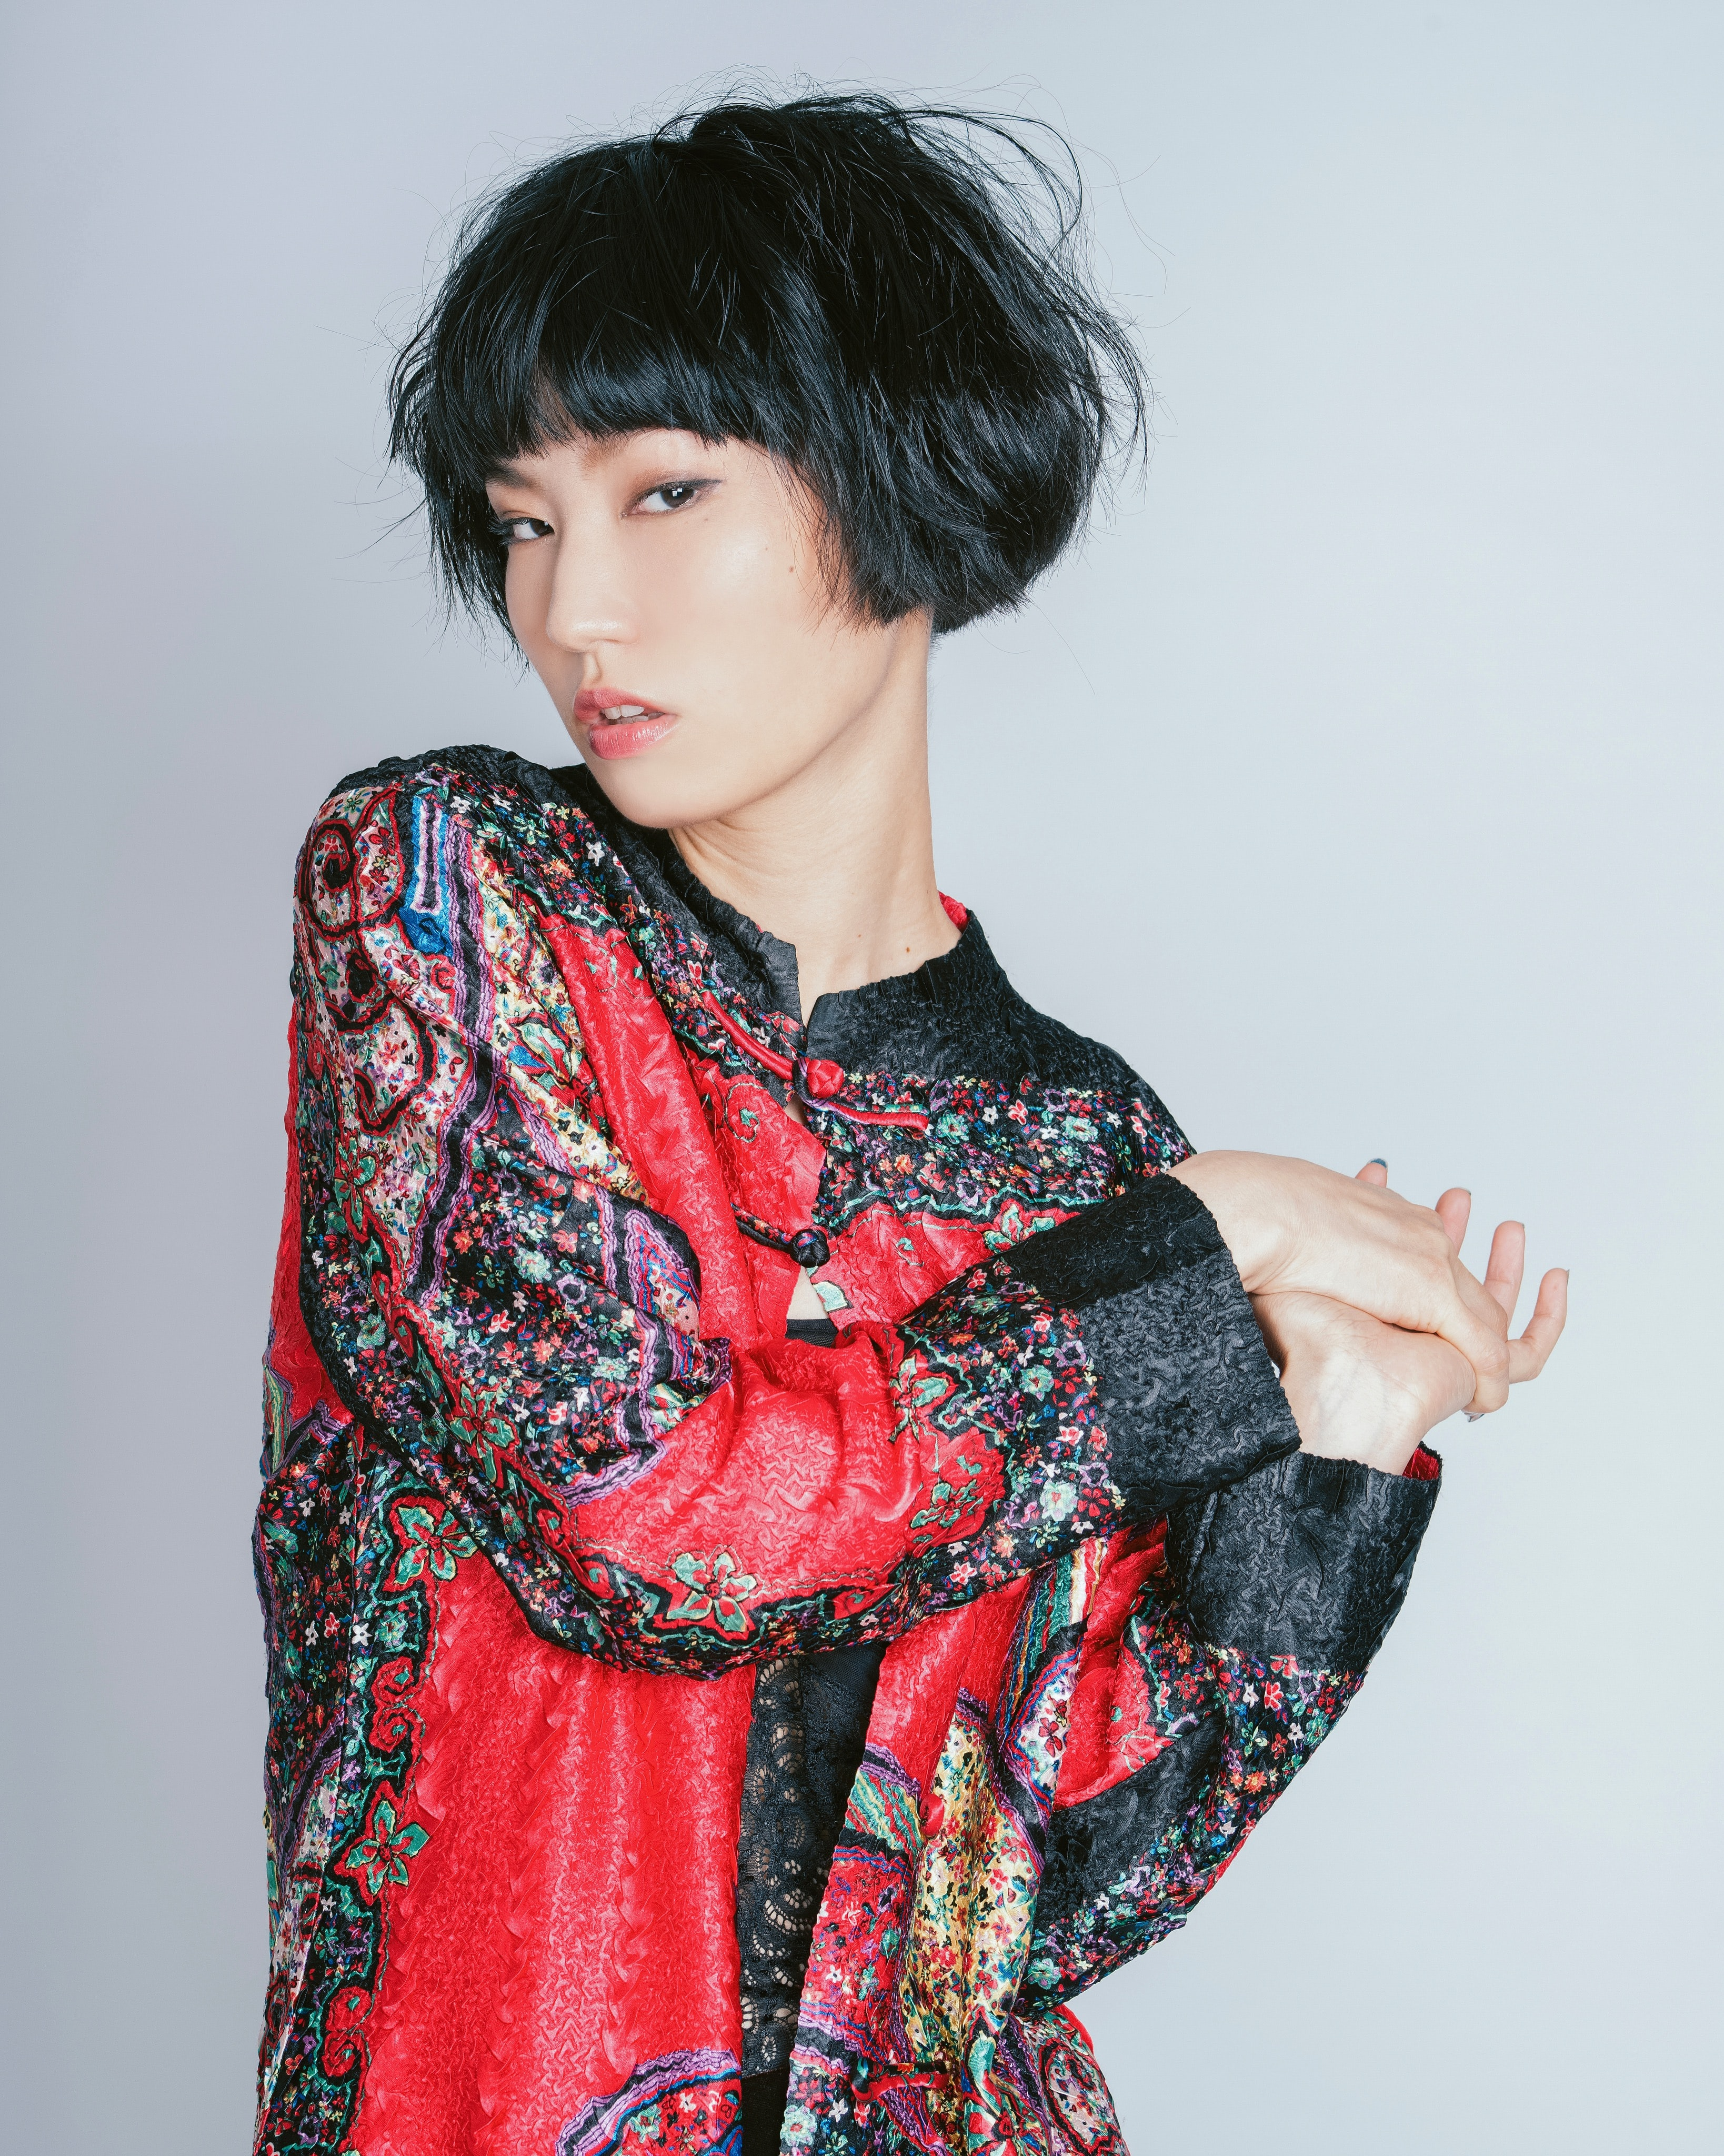 woman wearing floral long-sleeved shirt holding her hand